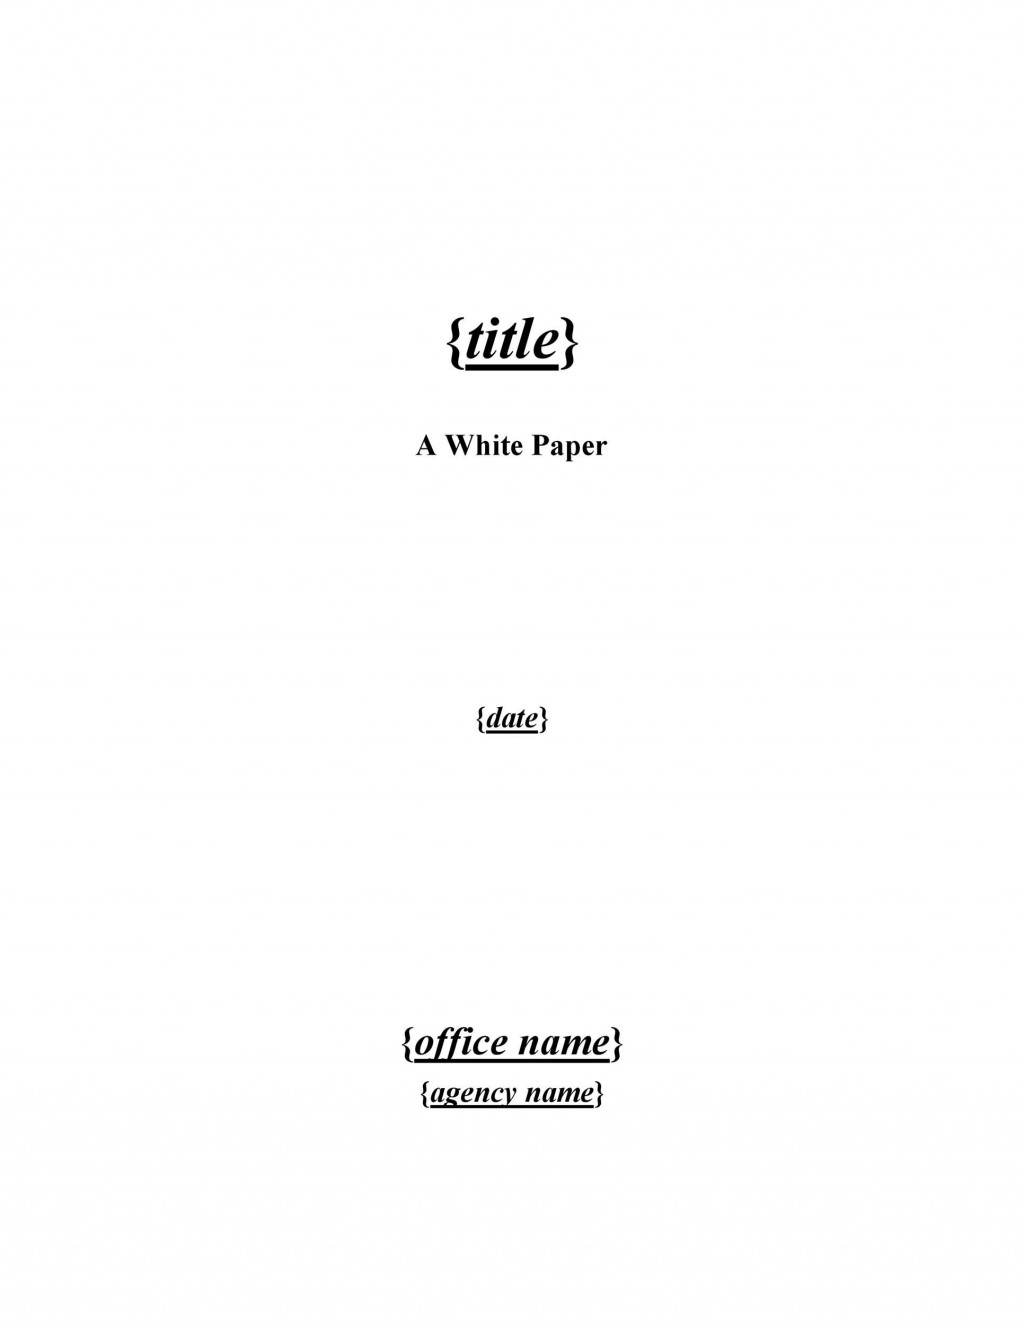 003 Impressive Free White Paper Template Microsoft Word Idea Large